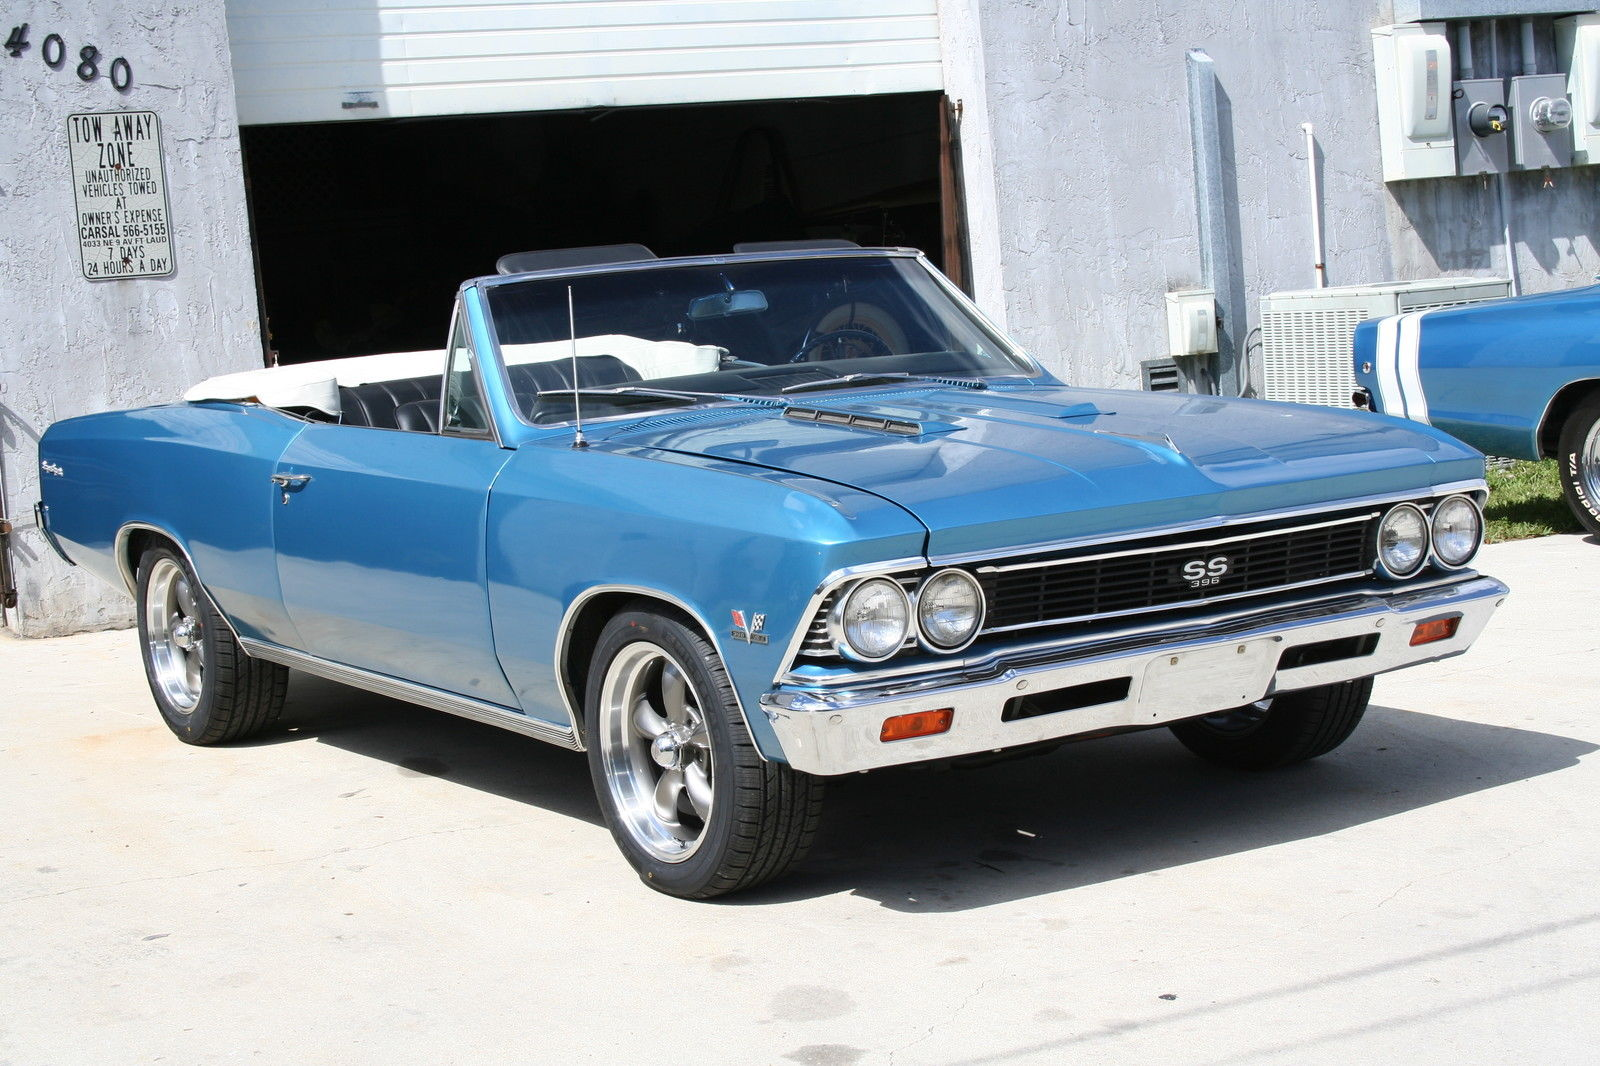 1966 chevelle convertible ss recreation 396ci automatic - Convertible center ...